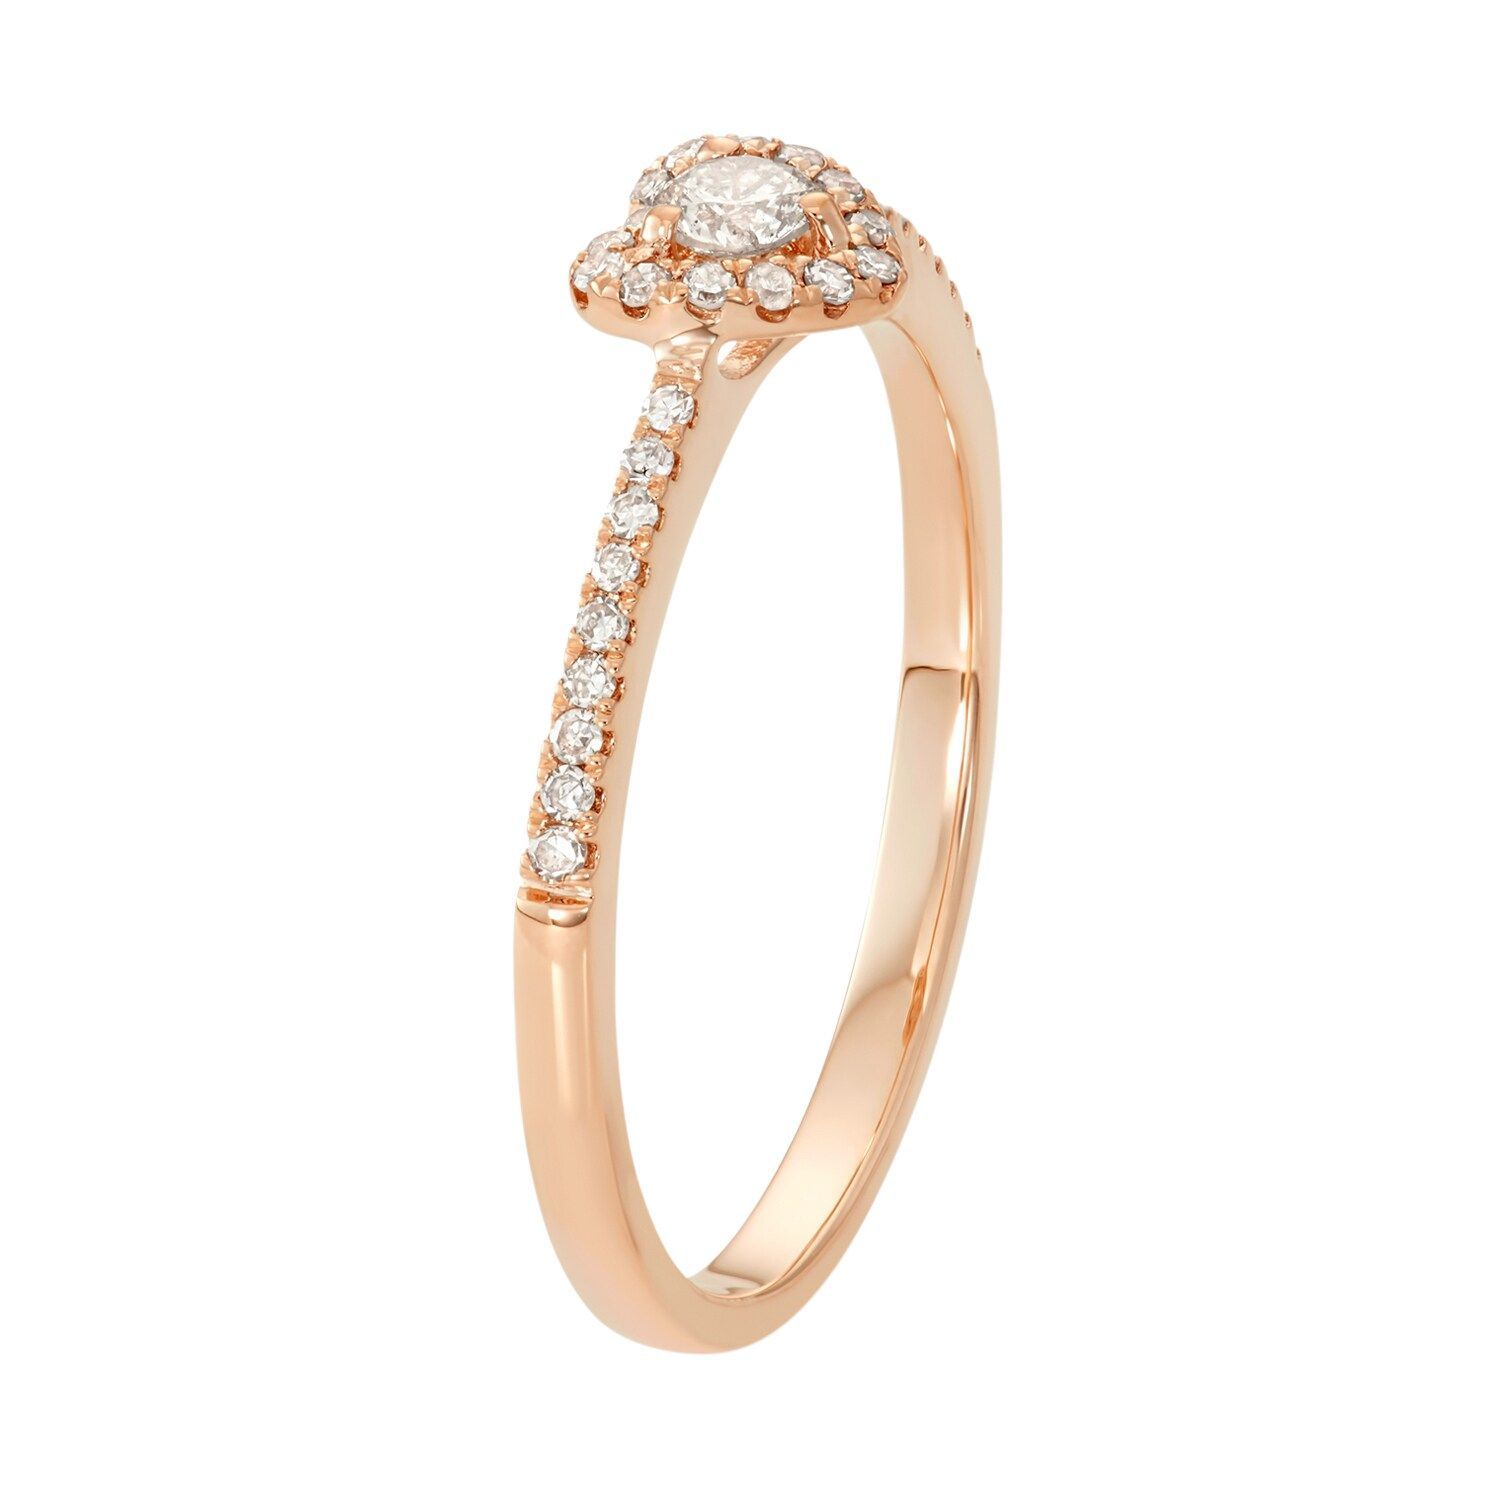 10k Rose Gold 1 4 Carat T W Diamond Heart Promise Ring Affiliate Gold Carat Rose Promise In 2020 Heart Promise Rings Diamond Heart Diamond Promise